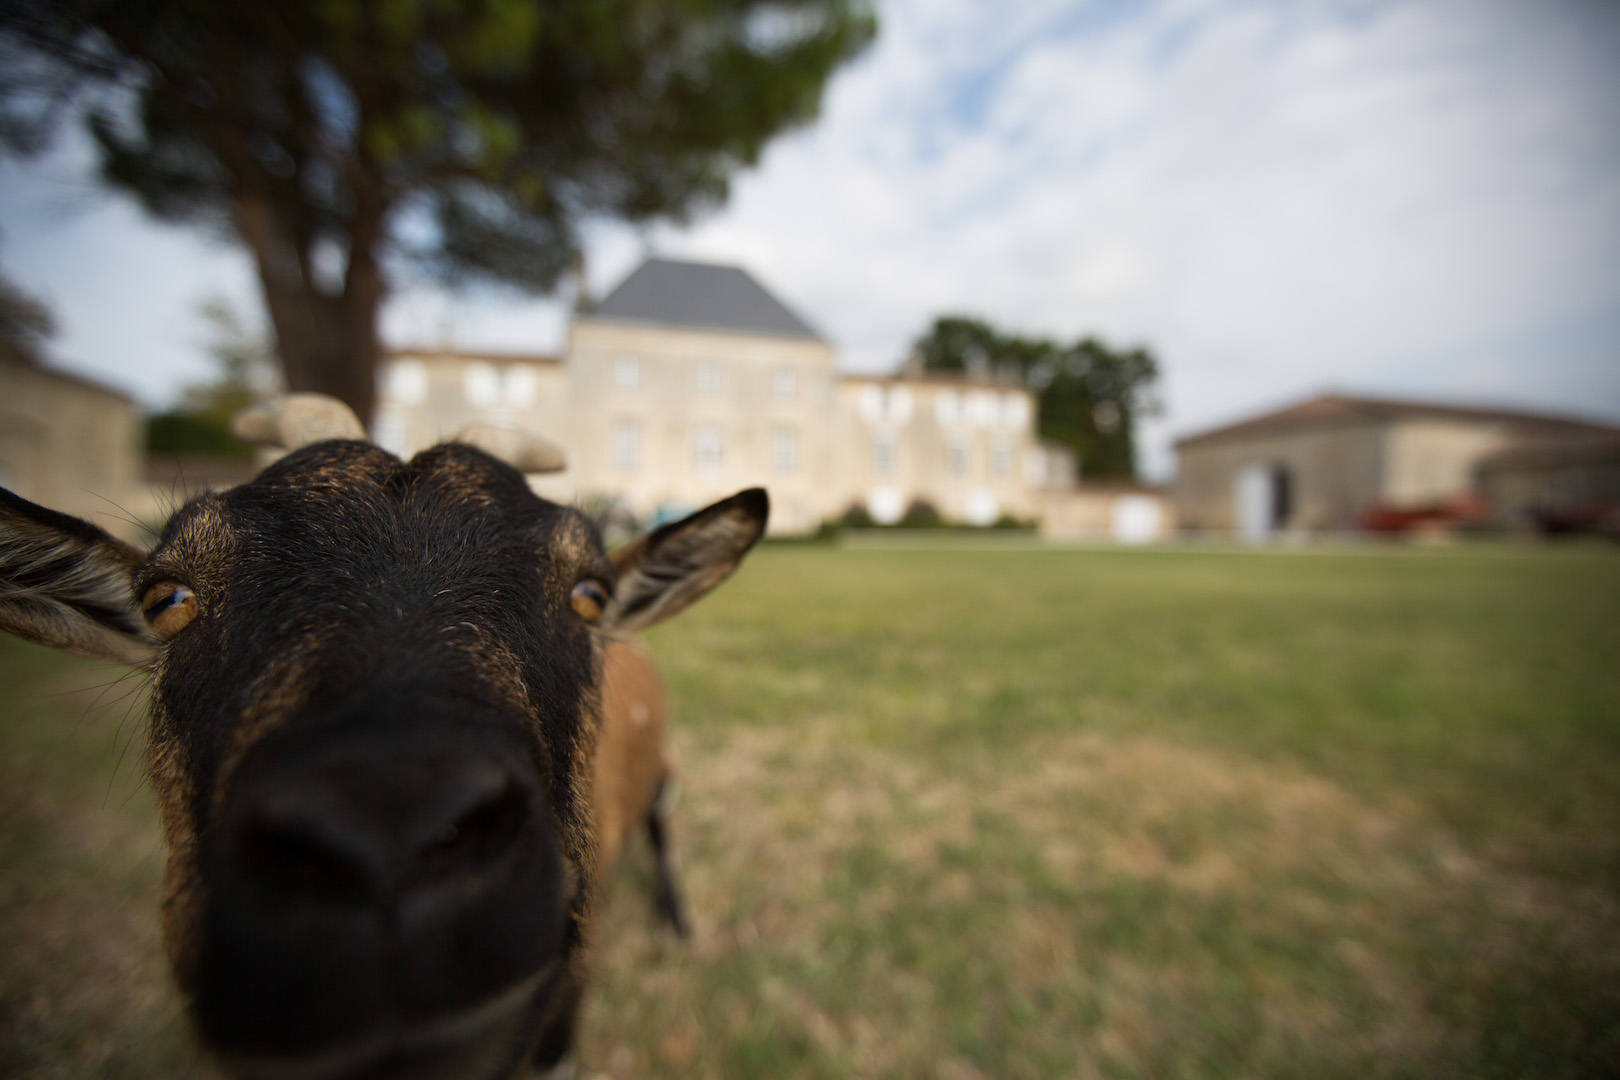 philosophy-chateau-des-arras-view-zoom-goat